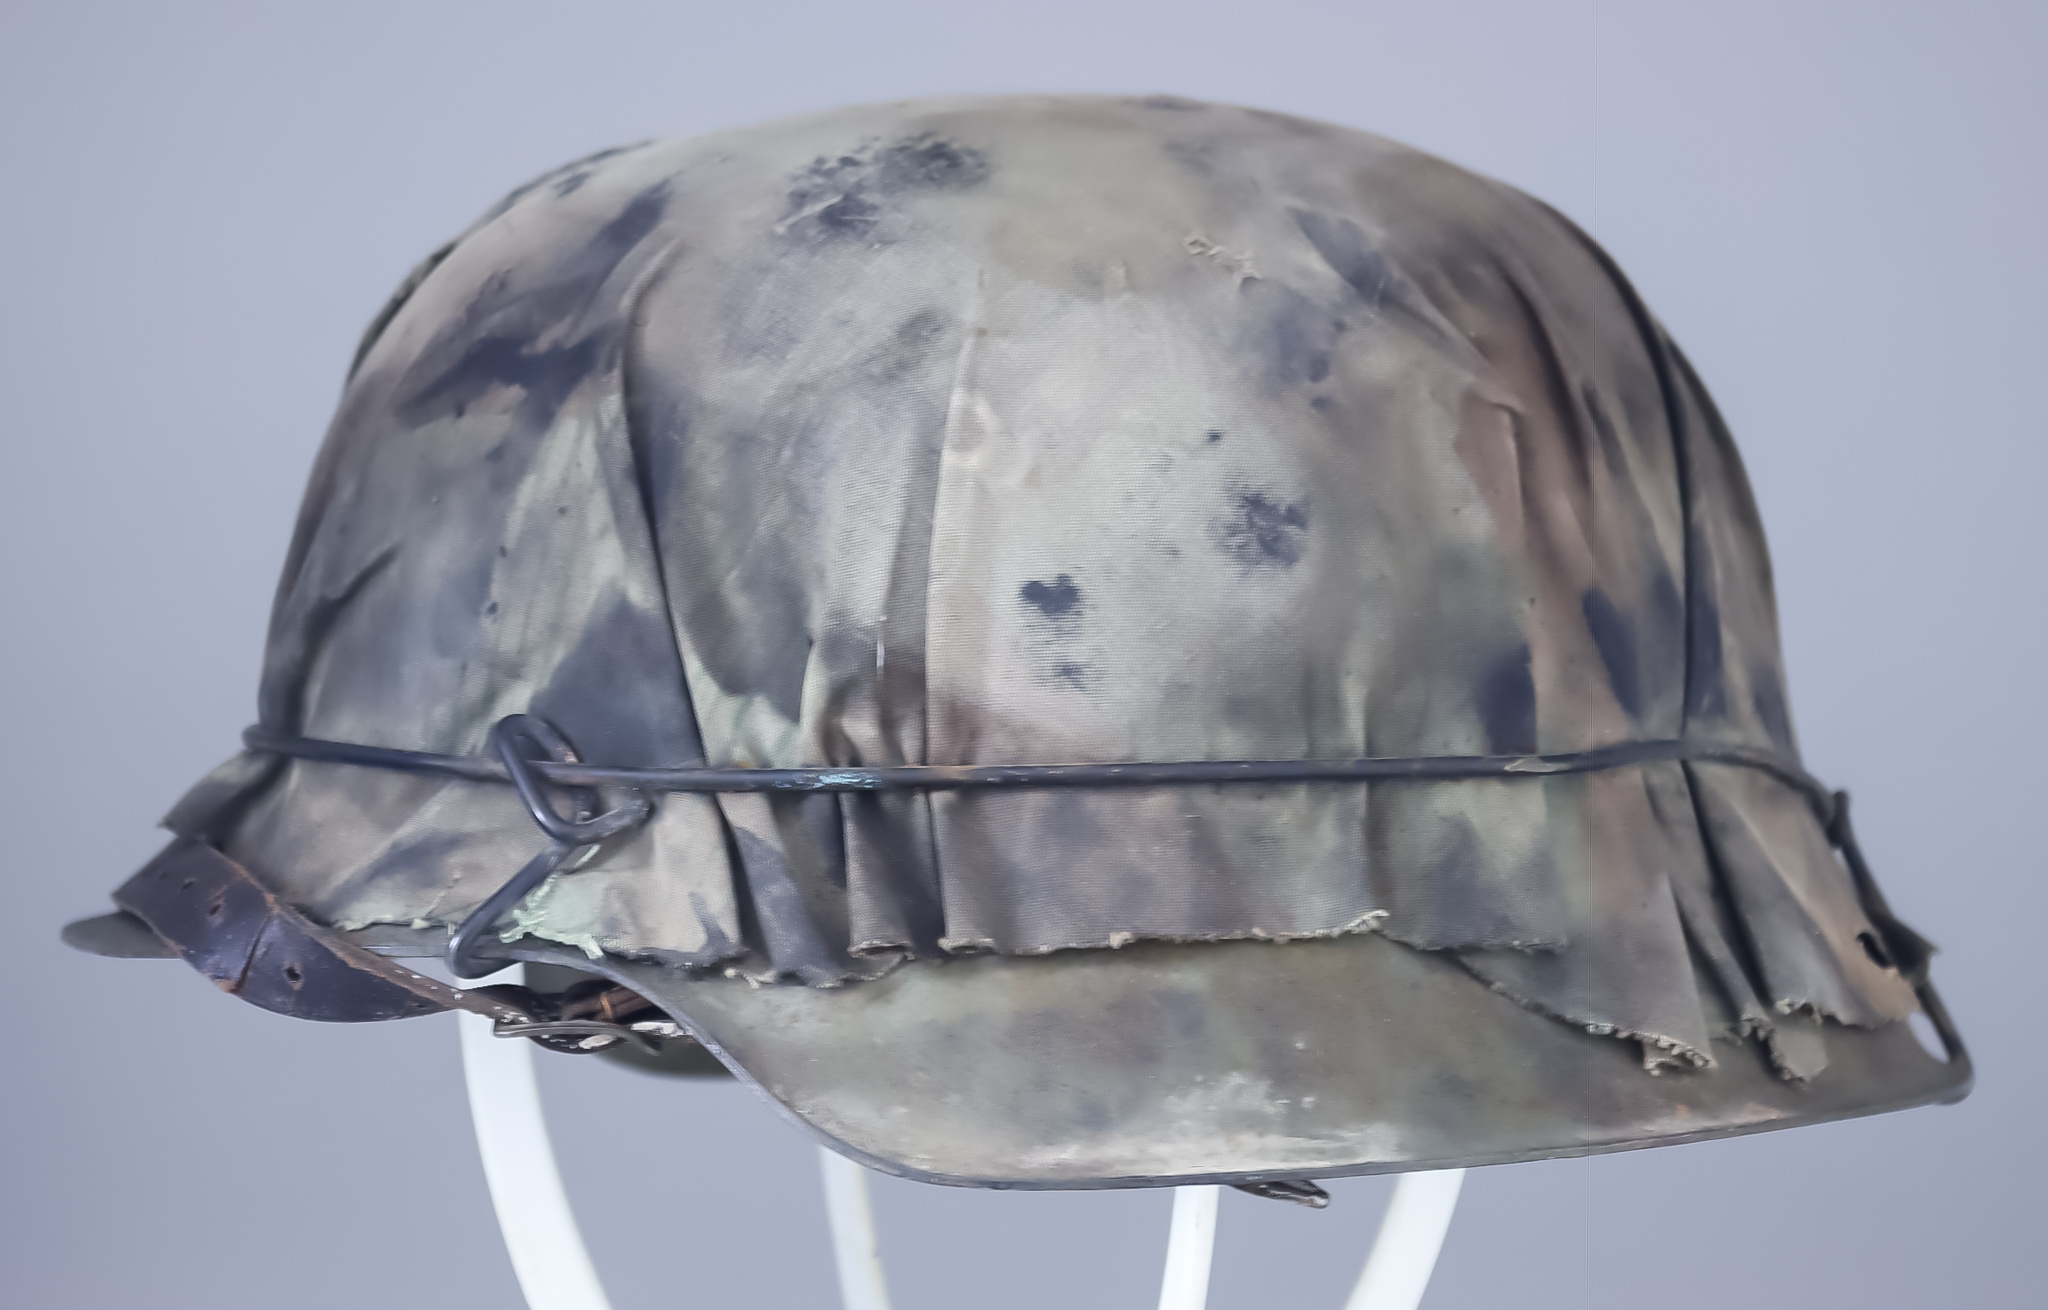 A German World War II German Helmet, covered in camouflage material with wire binding